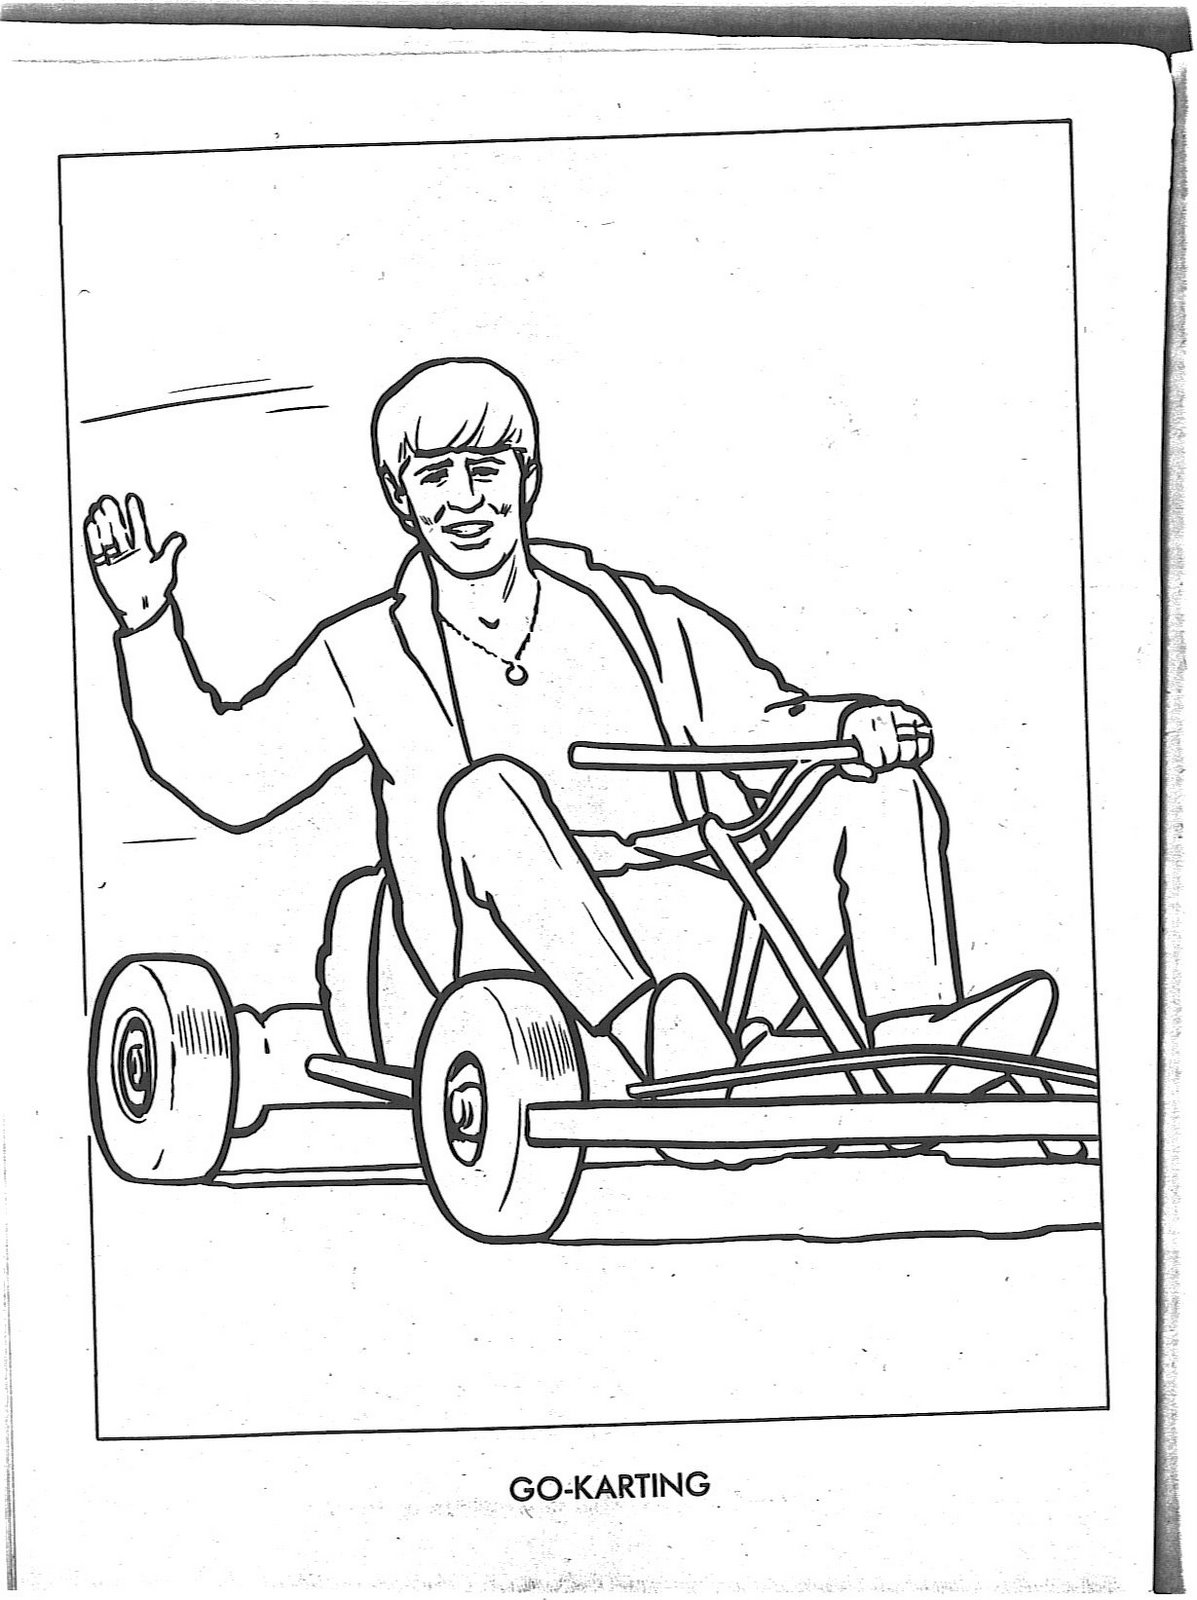 Ringo on a go-kart coloring book page | All Conference Vintage